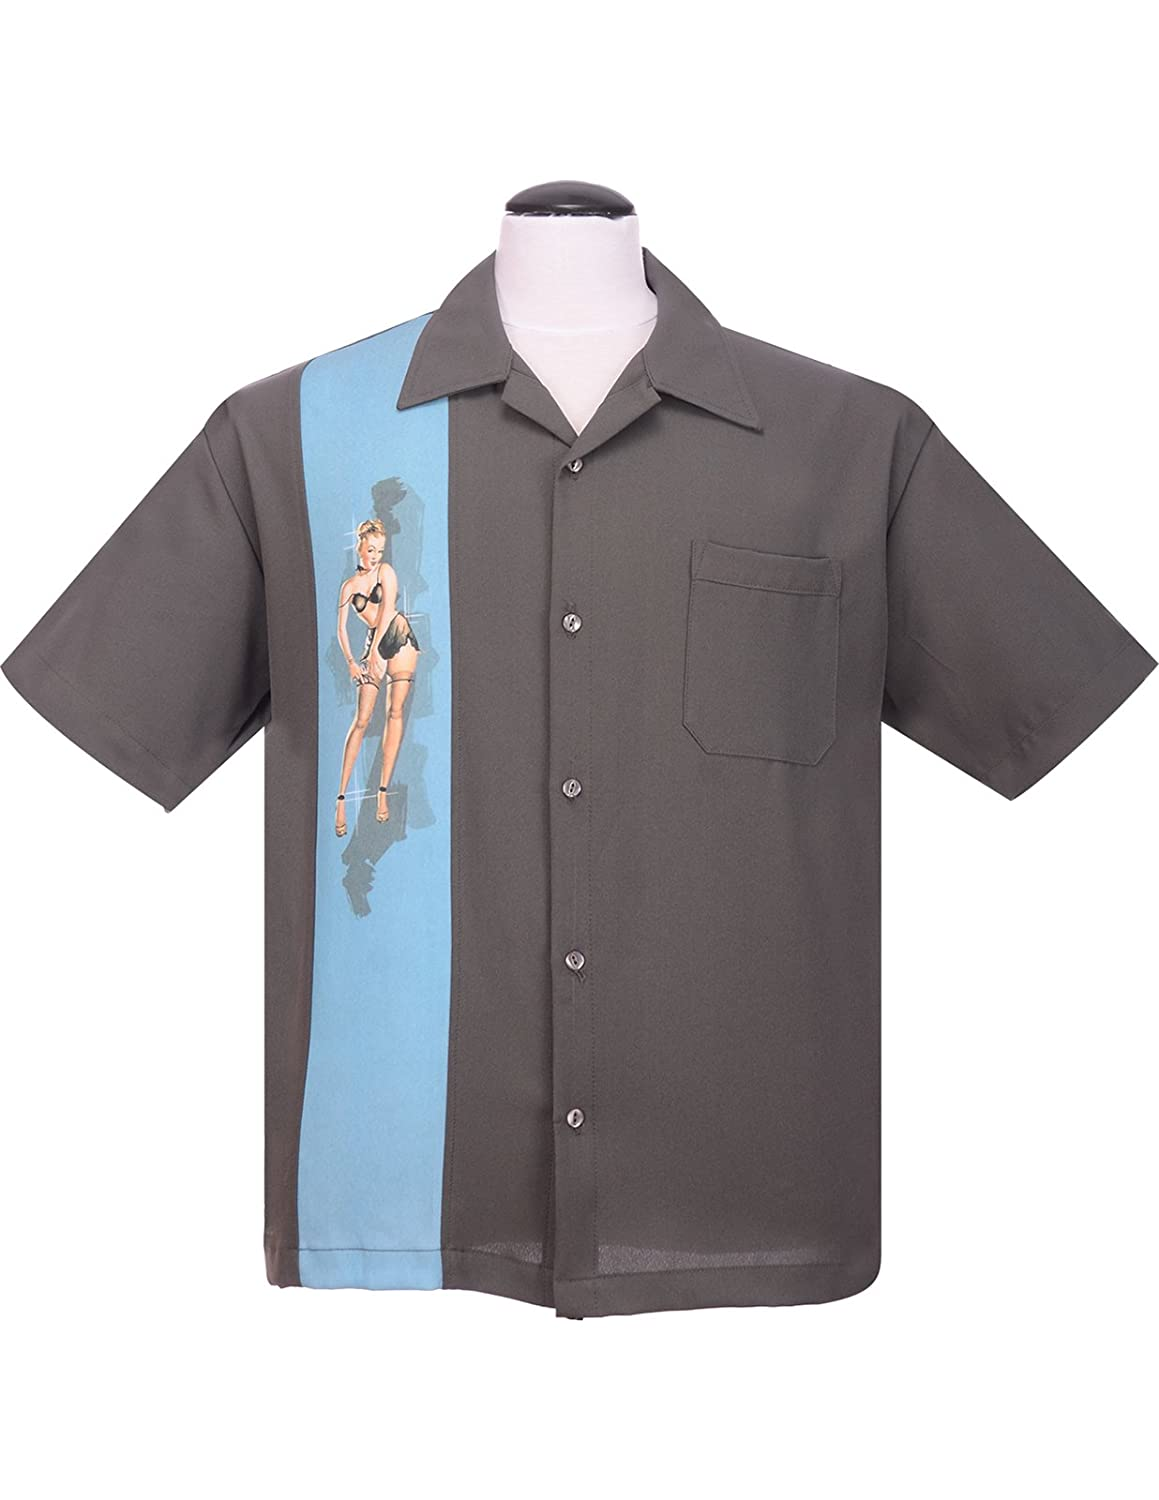 1950s Style Mens Clothing Steady Pinup Grey Girl Bowling Camp Lounge Shirt Retro 1950s 50s One Panel $46.00 AT vintagedancer.com